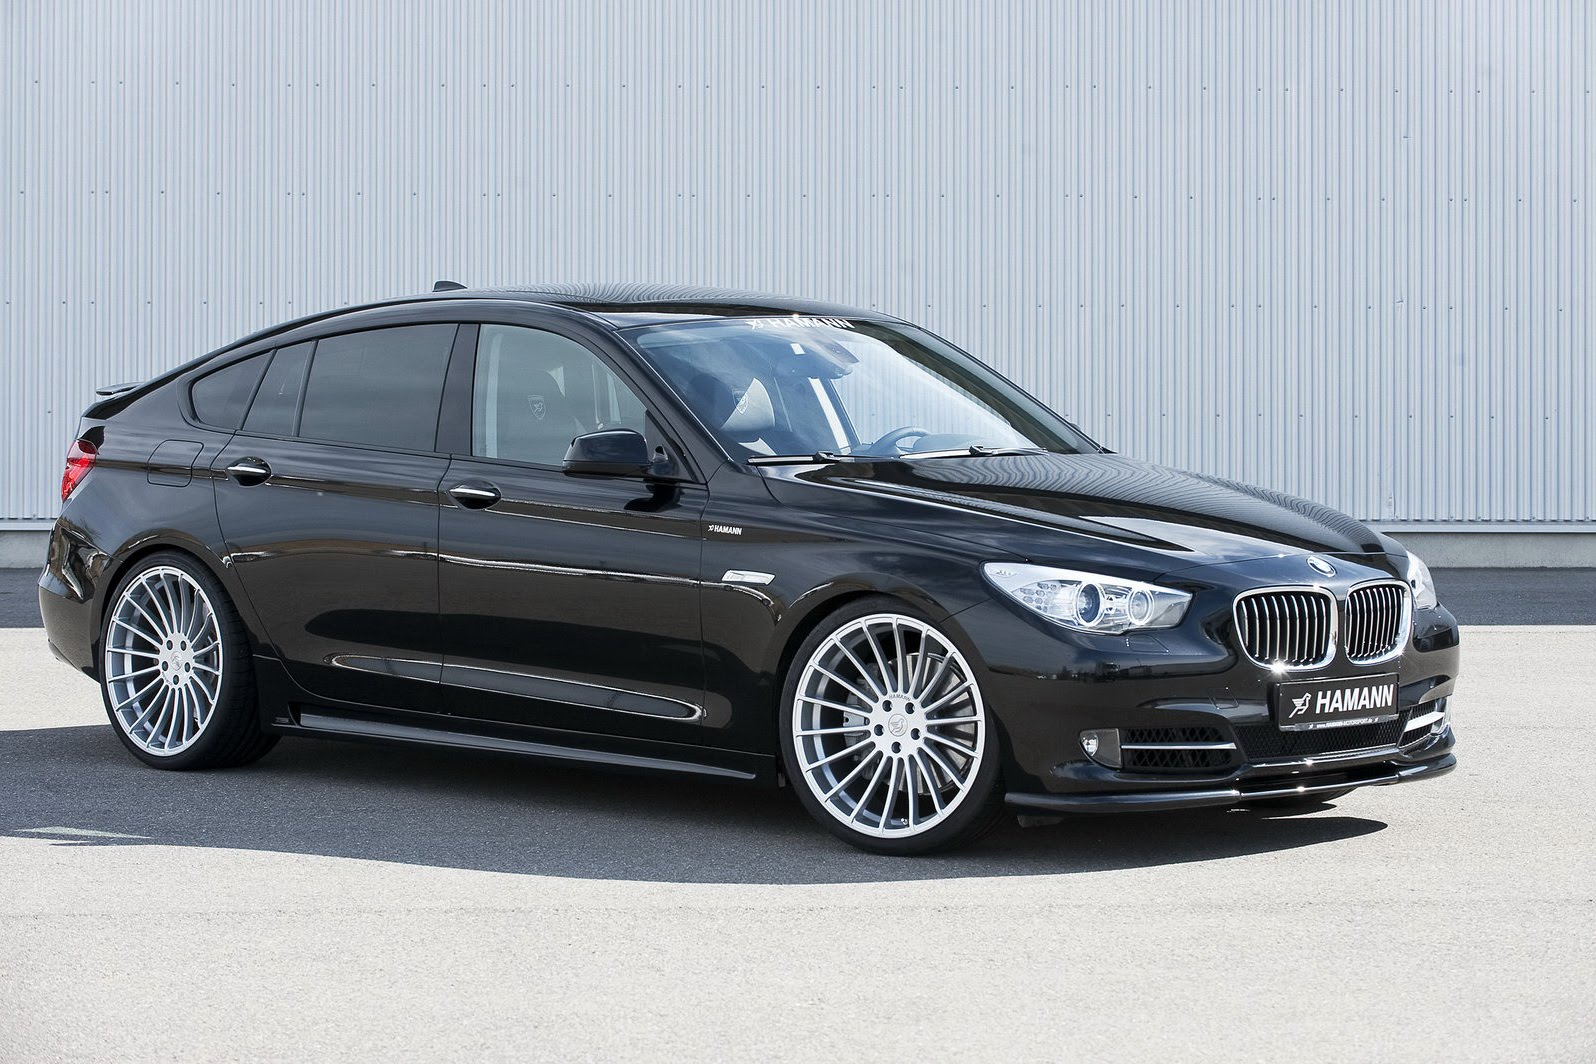 car hamann motorsports reinterprets the bmw 530d gt. Black Bedroom Furniture Sets. Home Design Ideas